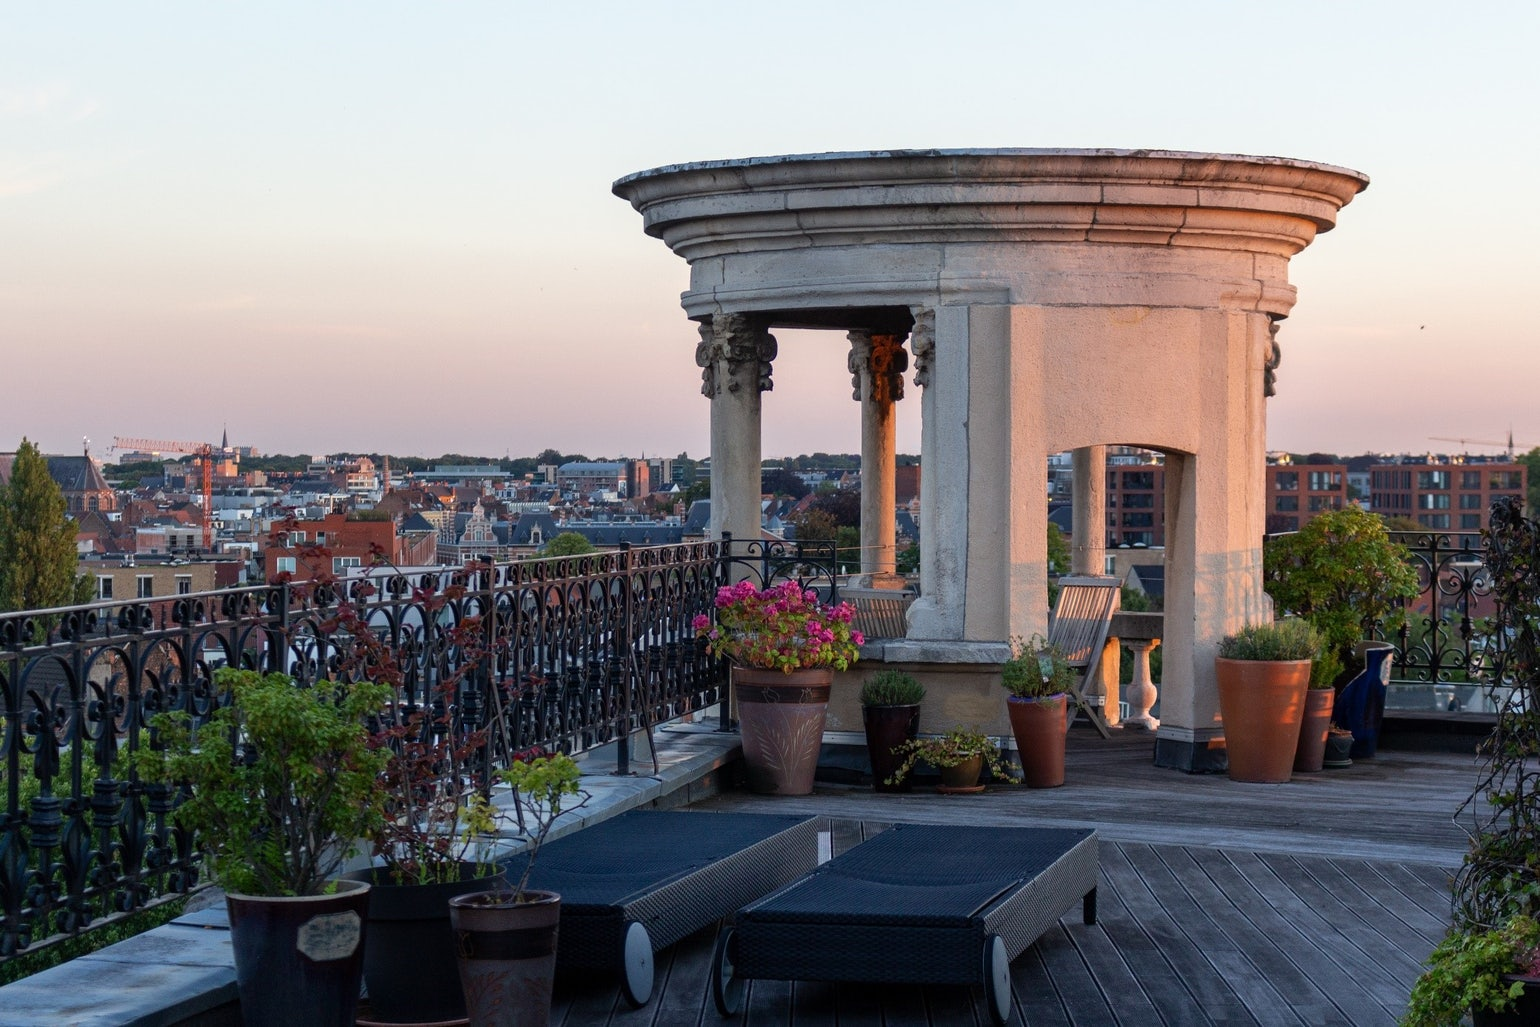 The roof terrace of the Translators' House at sunset